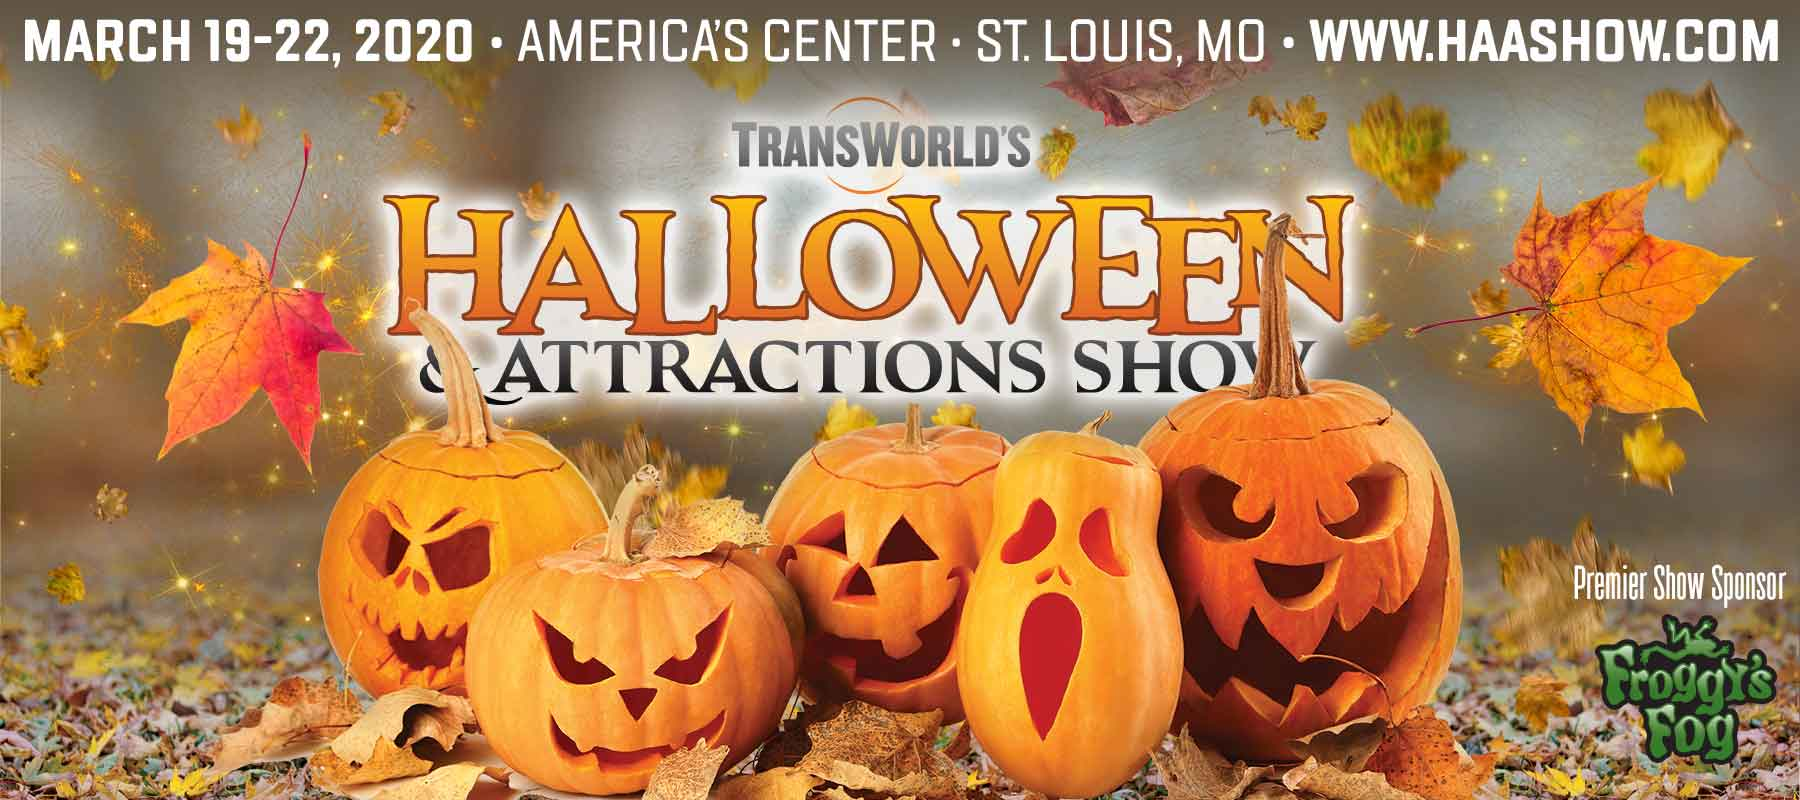 St Louis Halloween 2020 TransWorld's Halloween & Attractions Show and Christmas Show